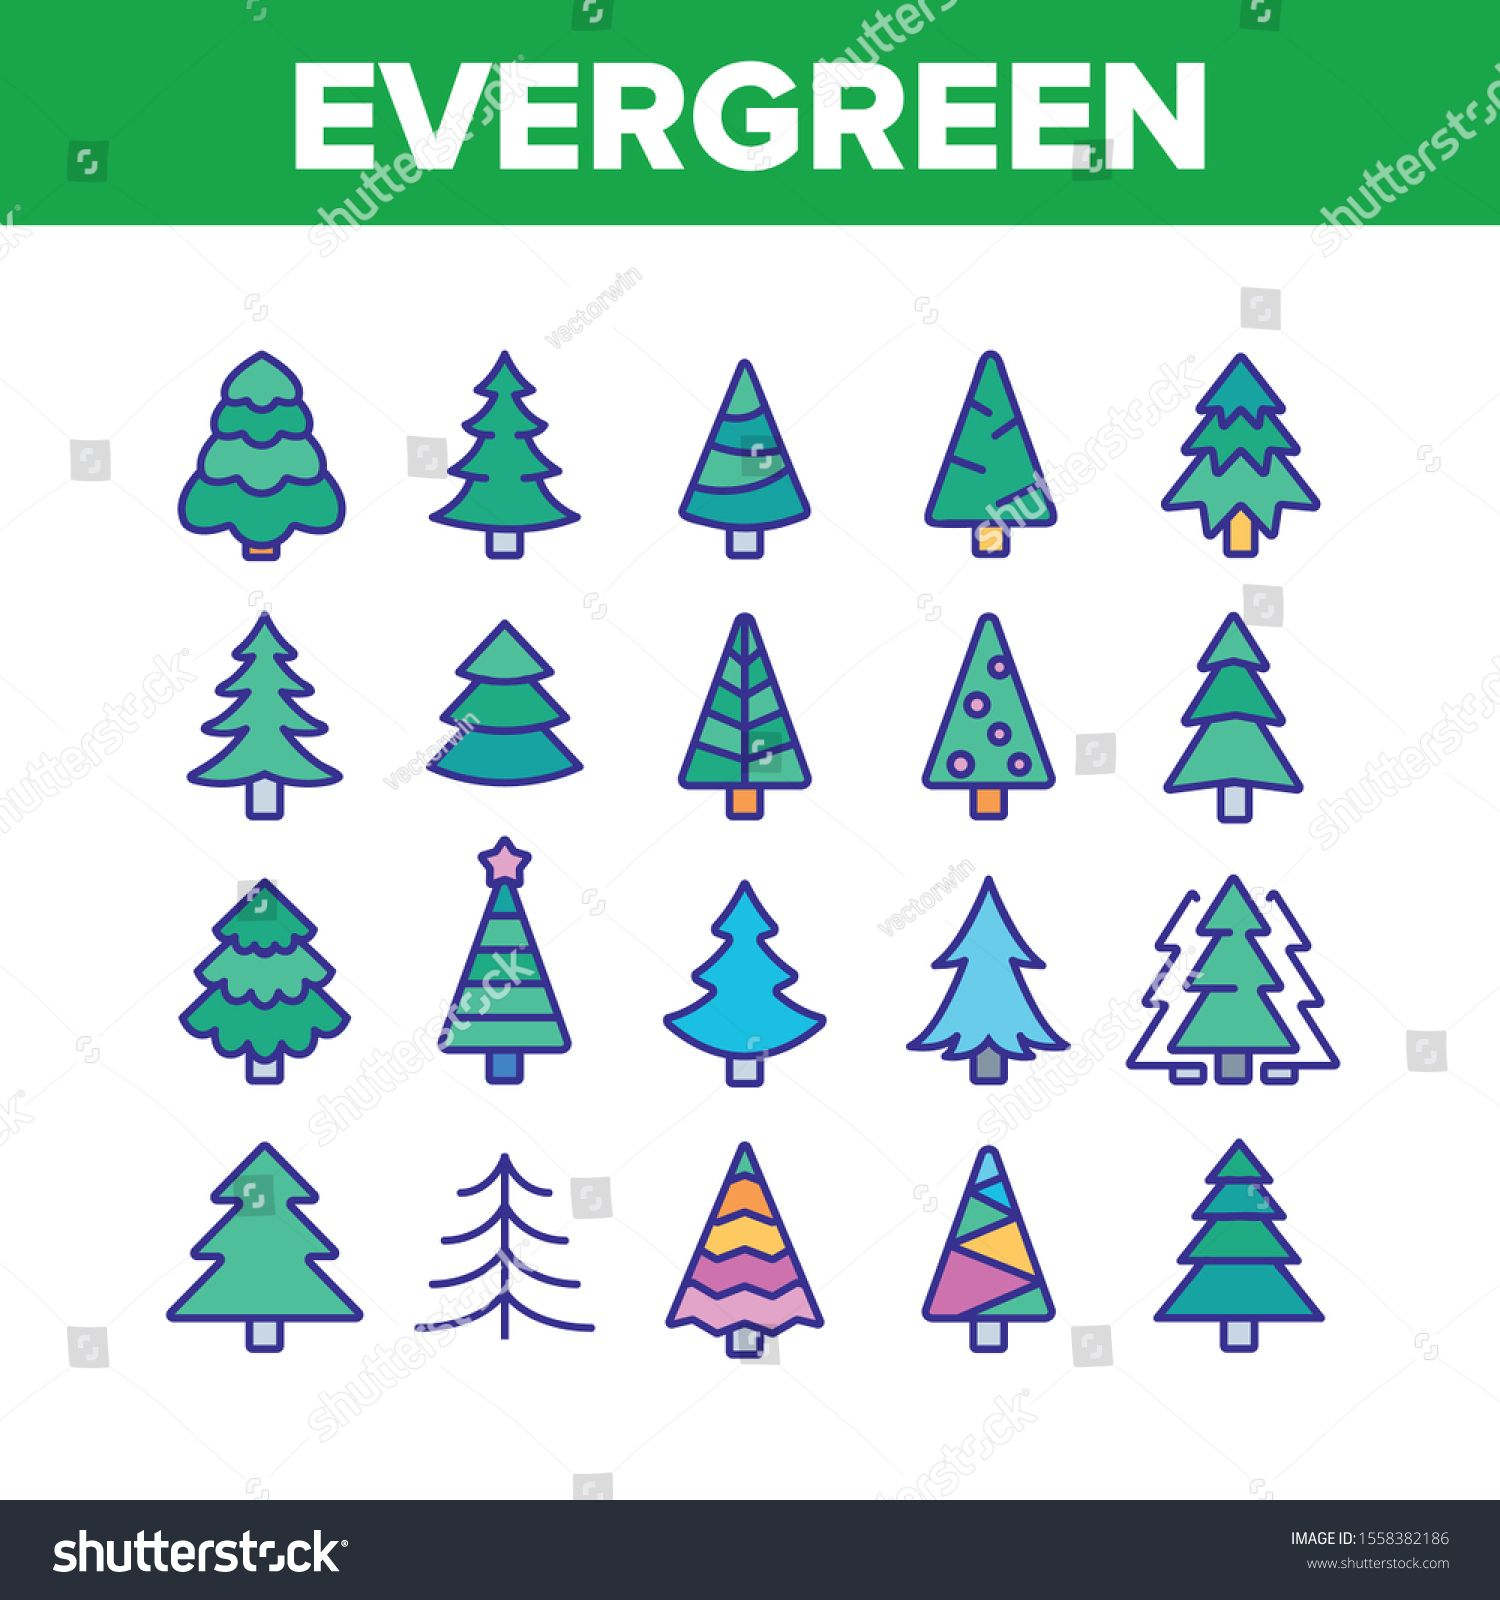 Evergreen Pine Tree Collection Icons Set Vector Thin Line Evergreen Fir With Needles Christmas Ornament Concept Linear Pic Pictogram Icon Set Icon Set Vector